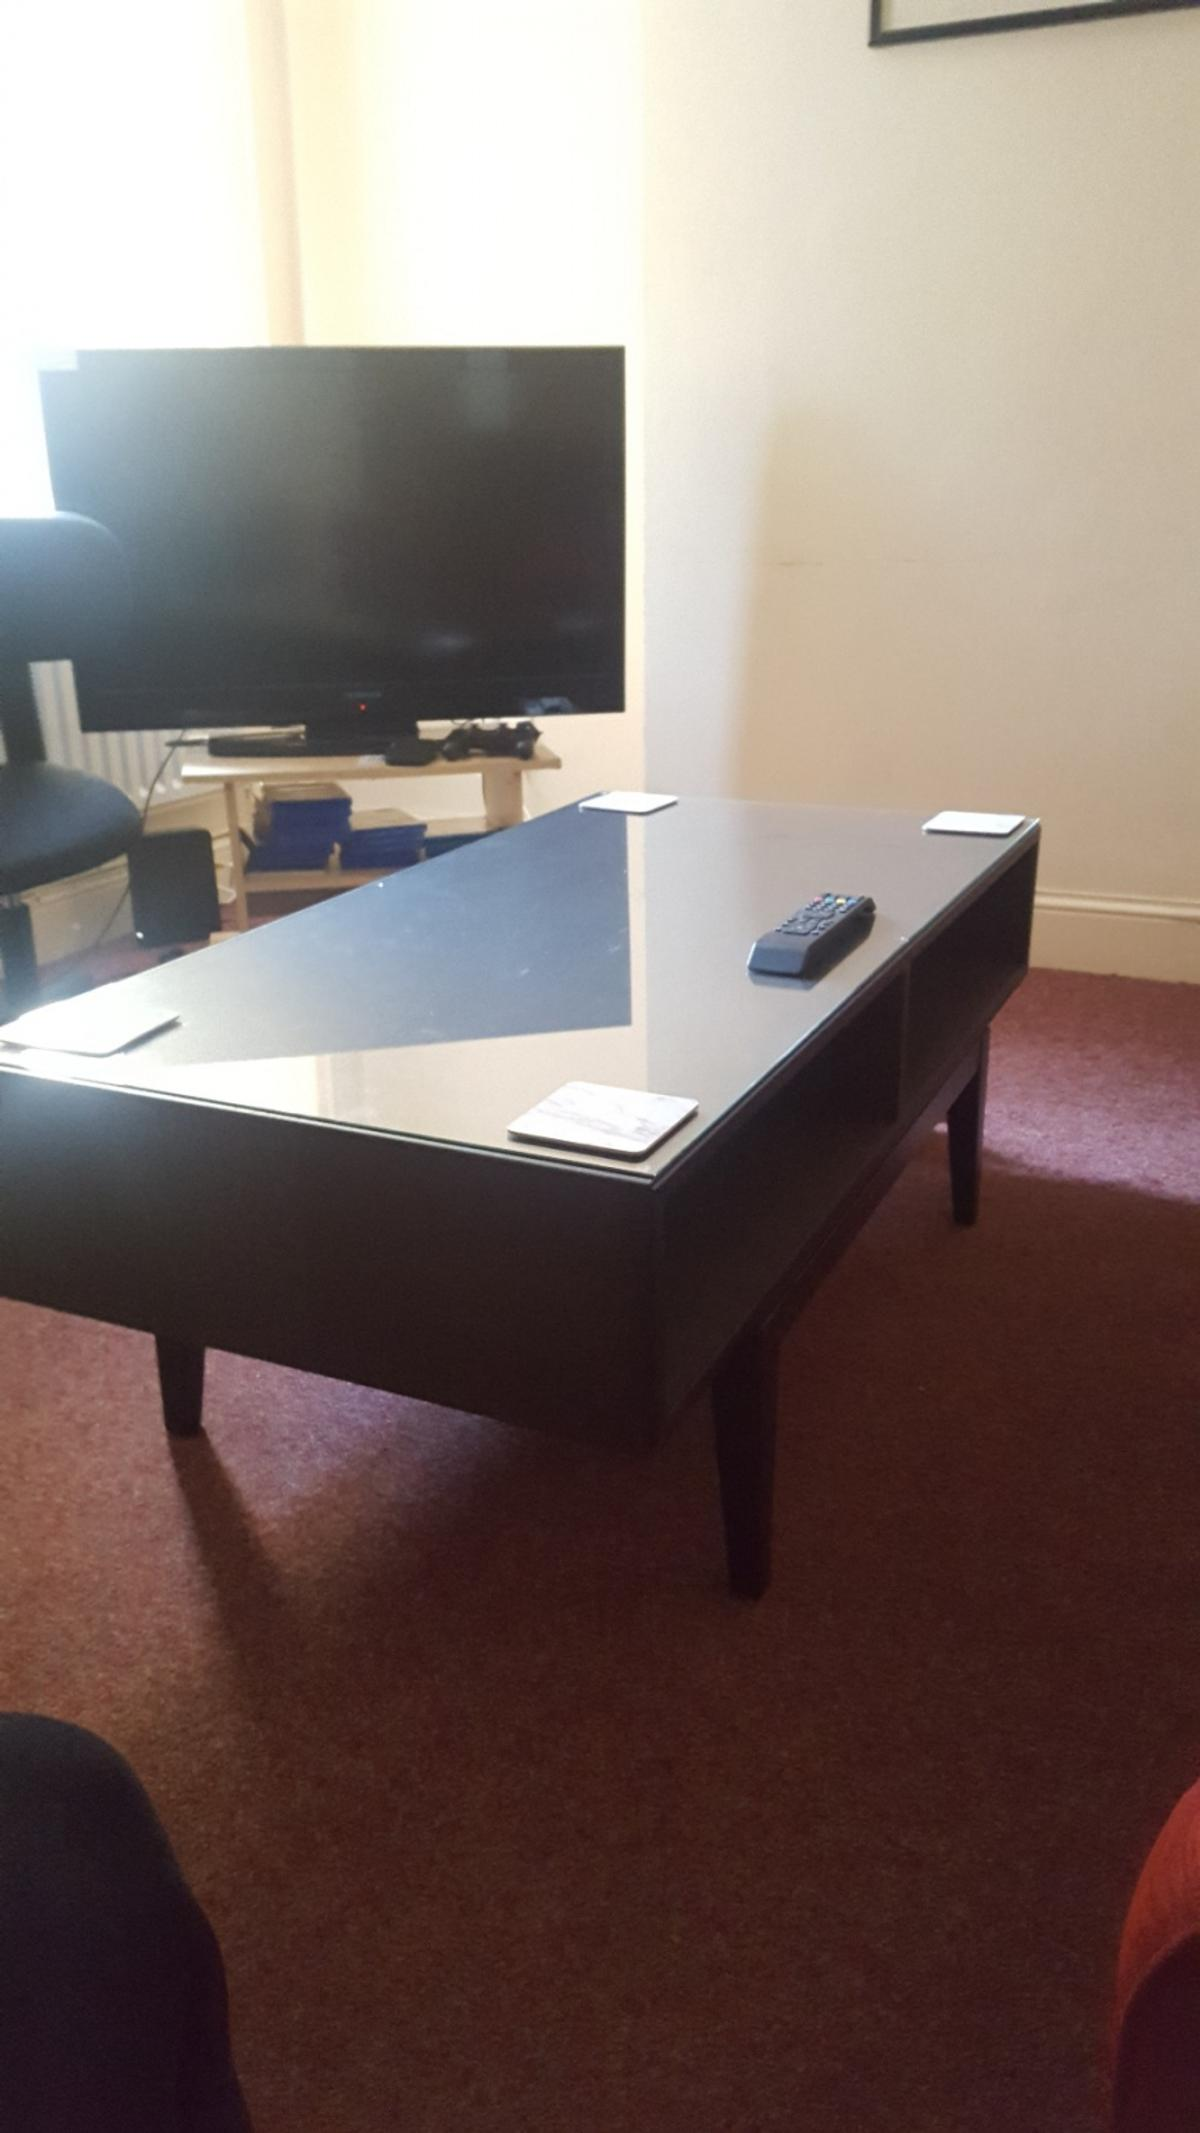 Original Price £95. V. Good condition. Glass top detaches for transport. Collection only